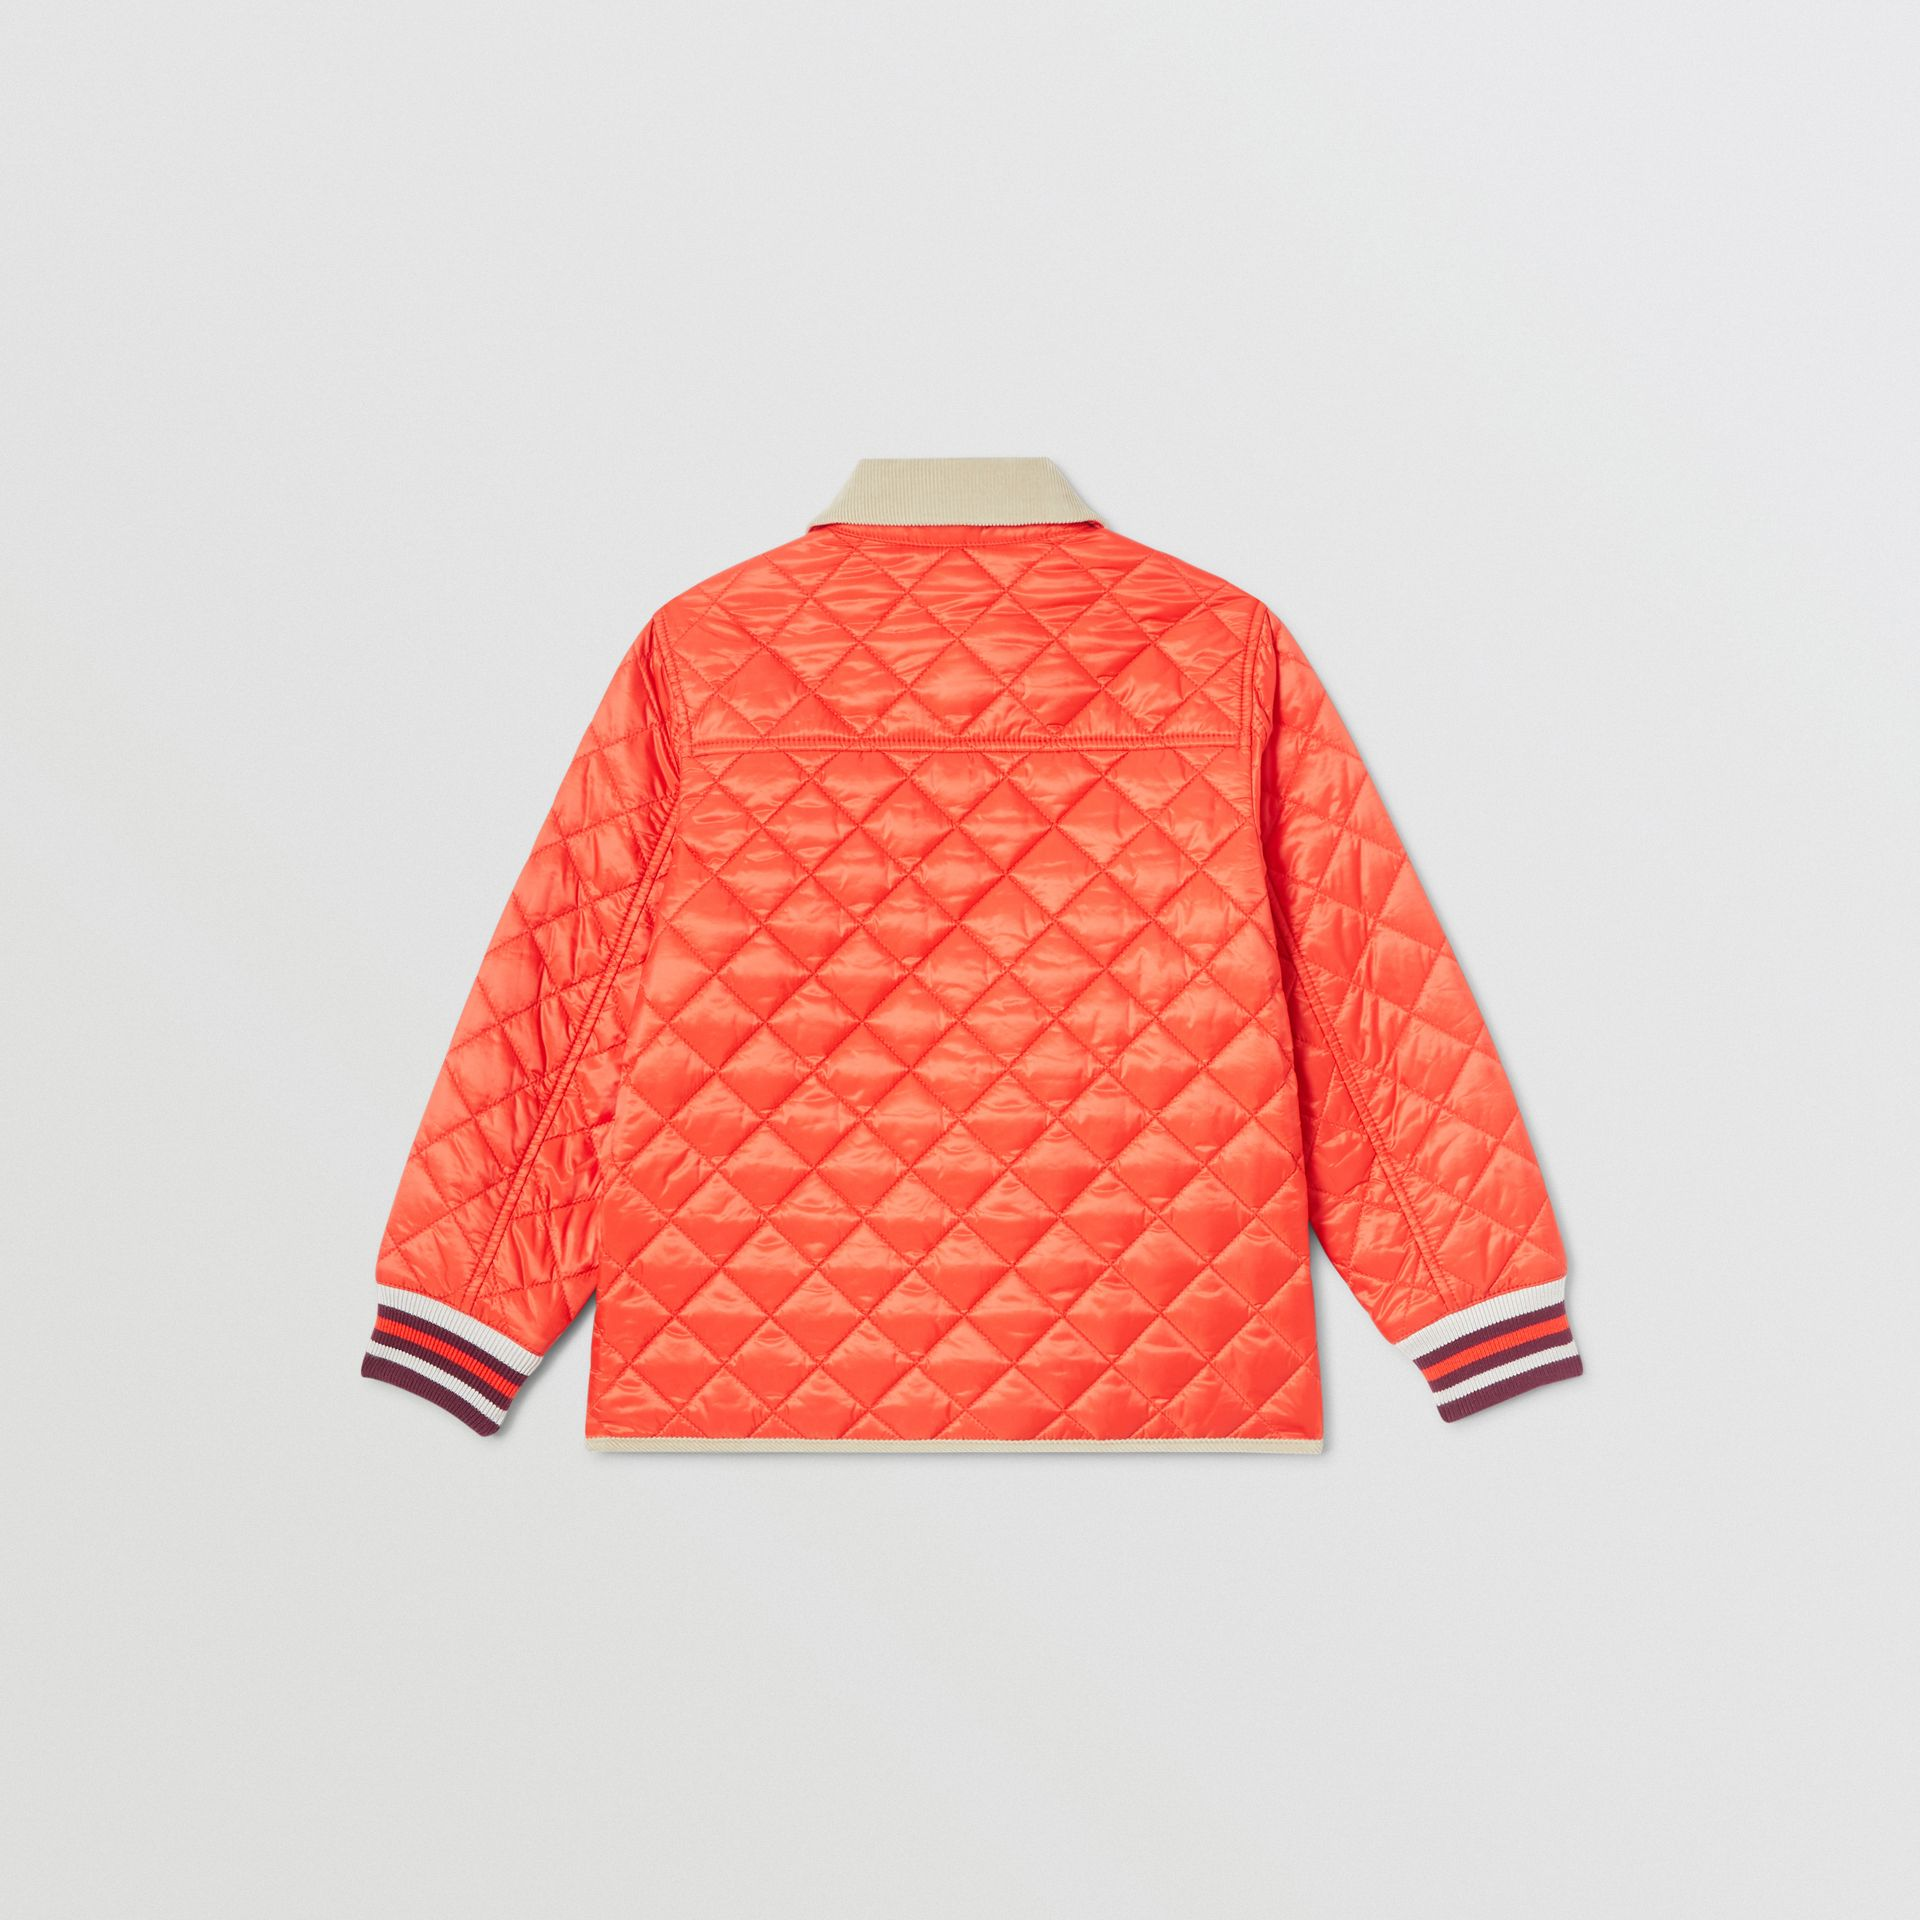 Corduroy Trim Lightweight Diamond Quilted Jacket in Bright Coral Orange | Burberry Australia - gallery image 3